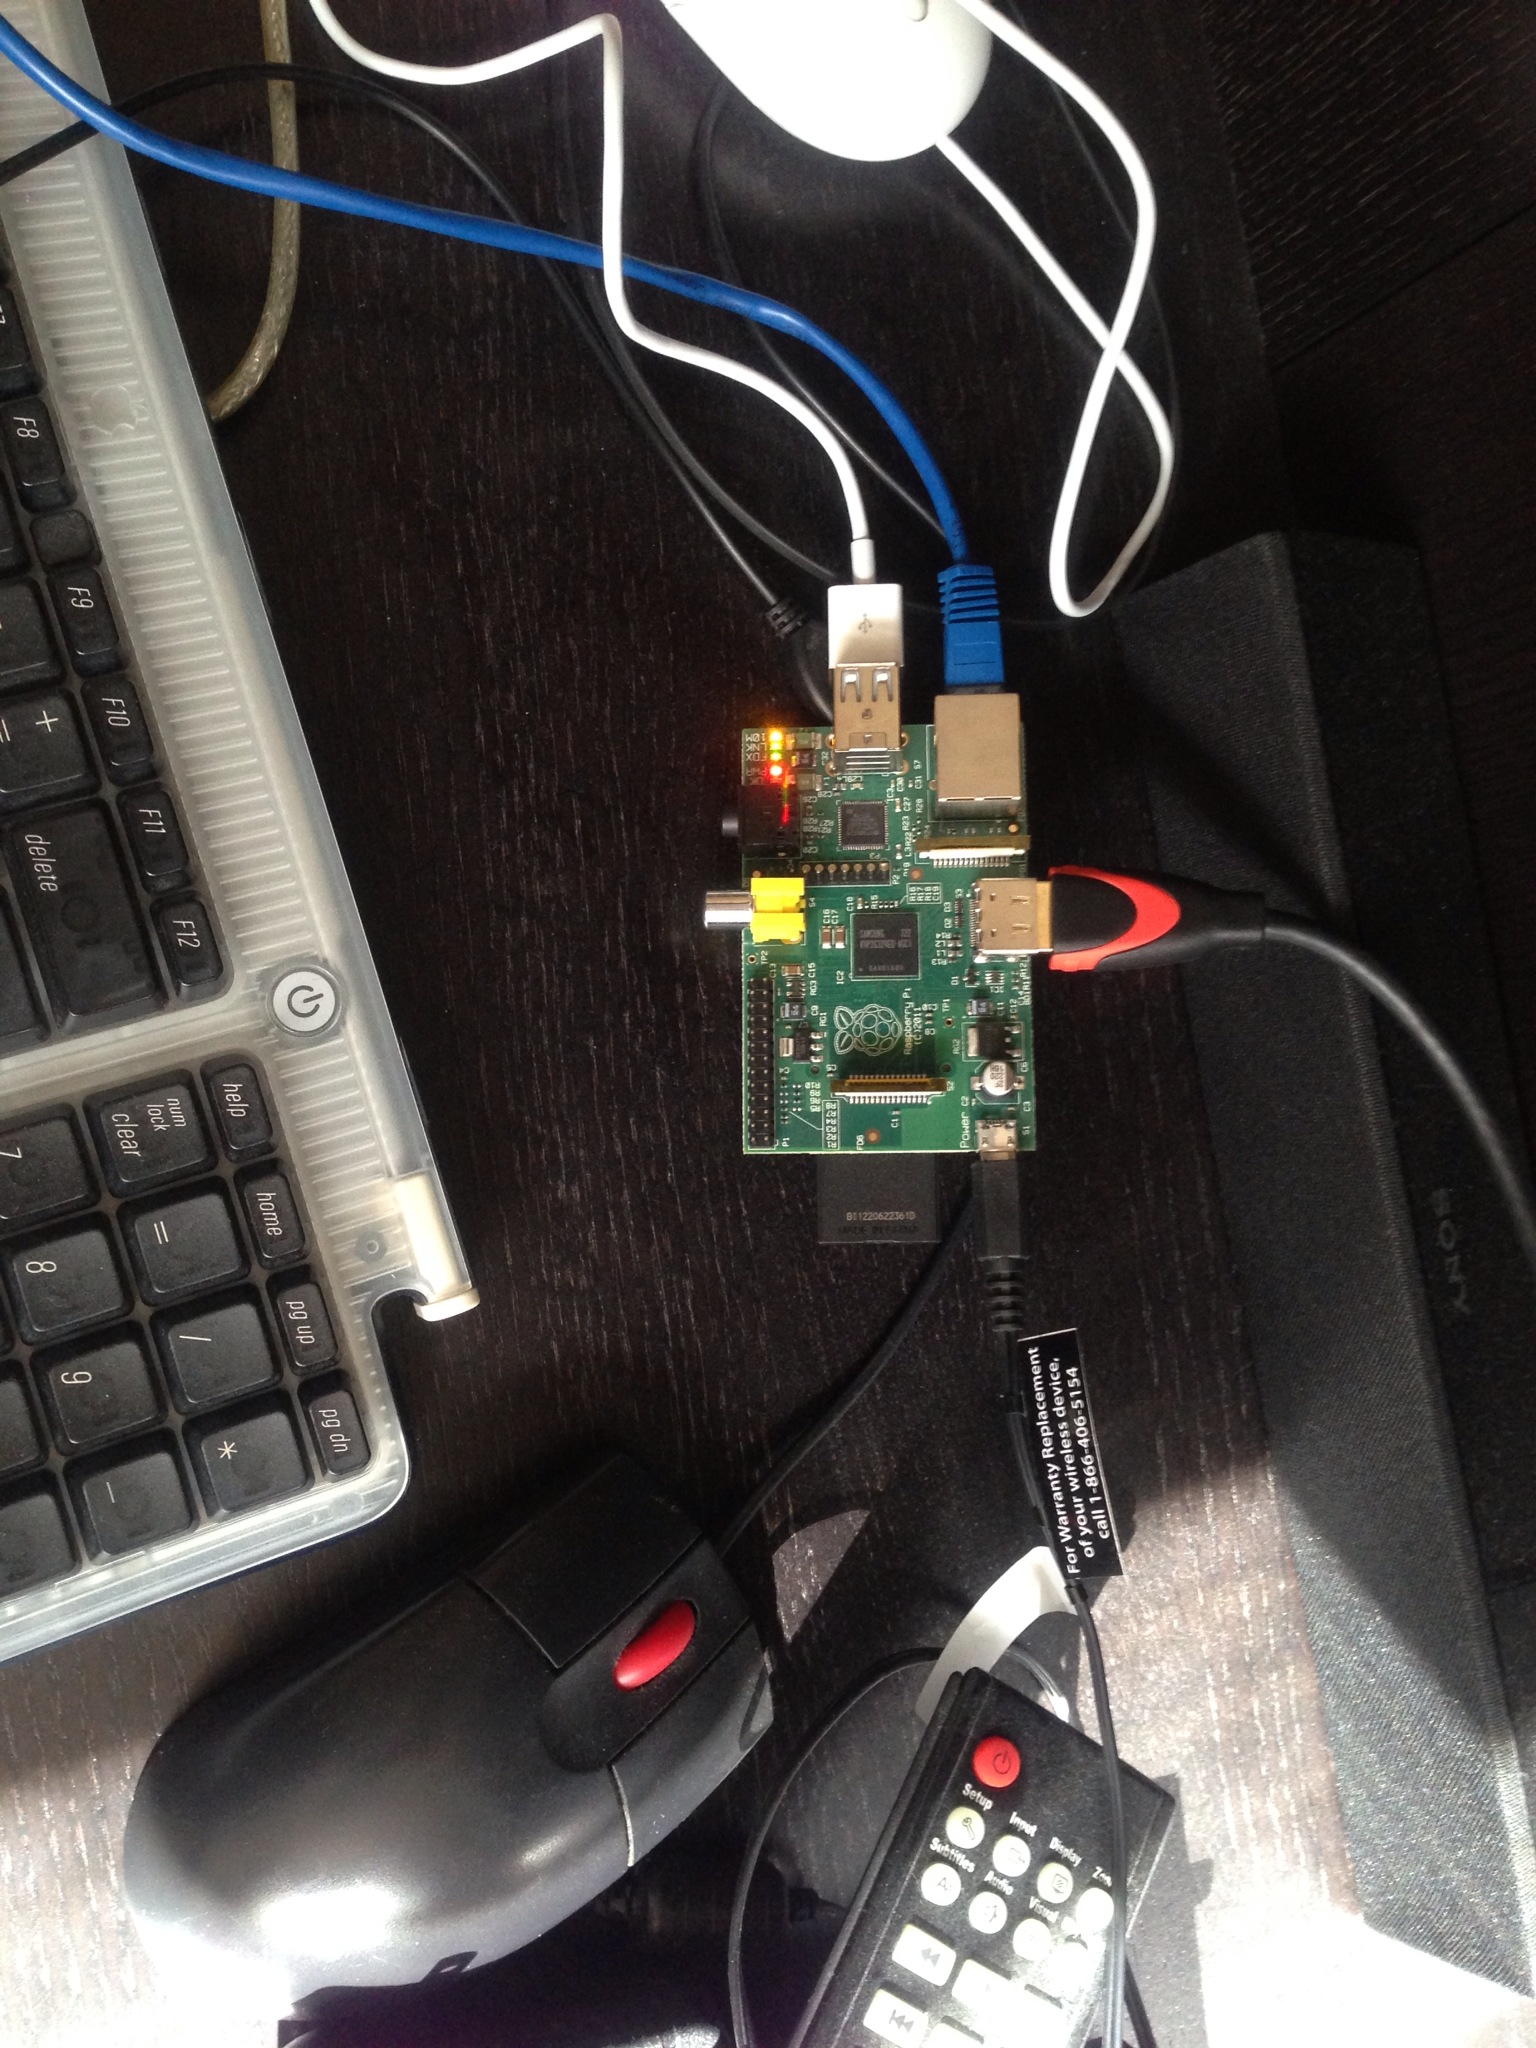 http://evuraan.info/screenshots/images/thani-raspberry-pi-2.jpg